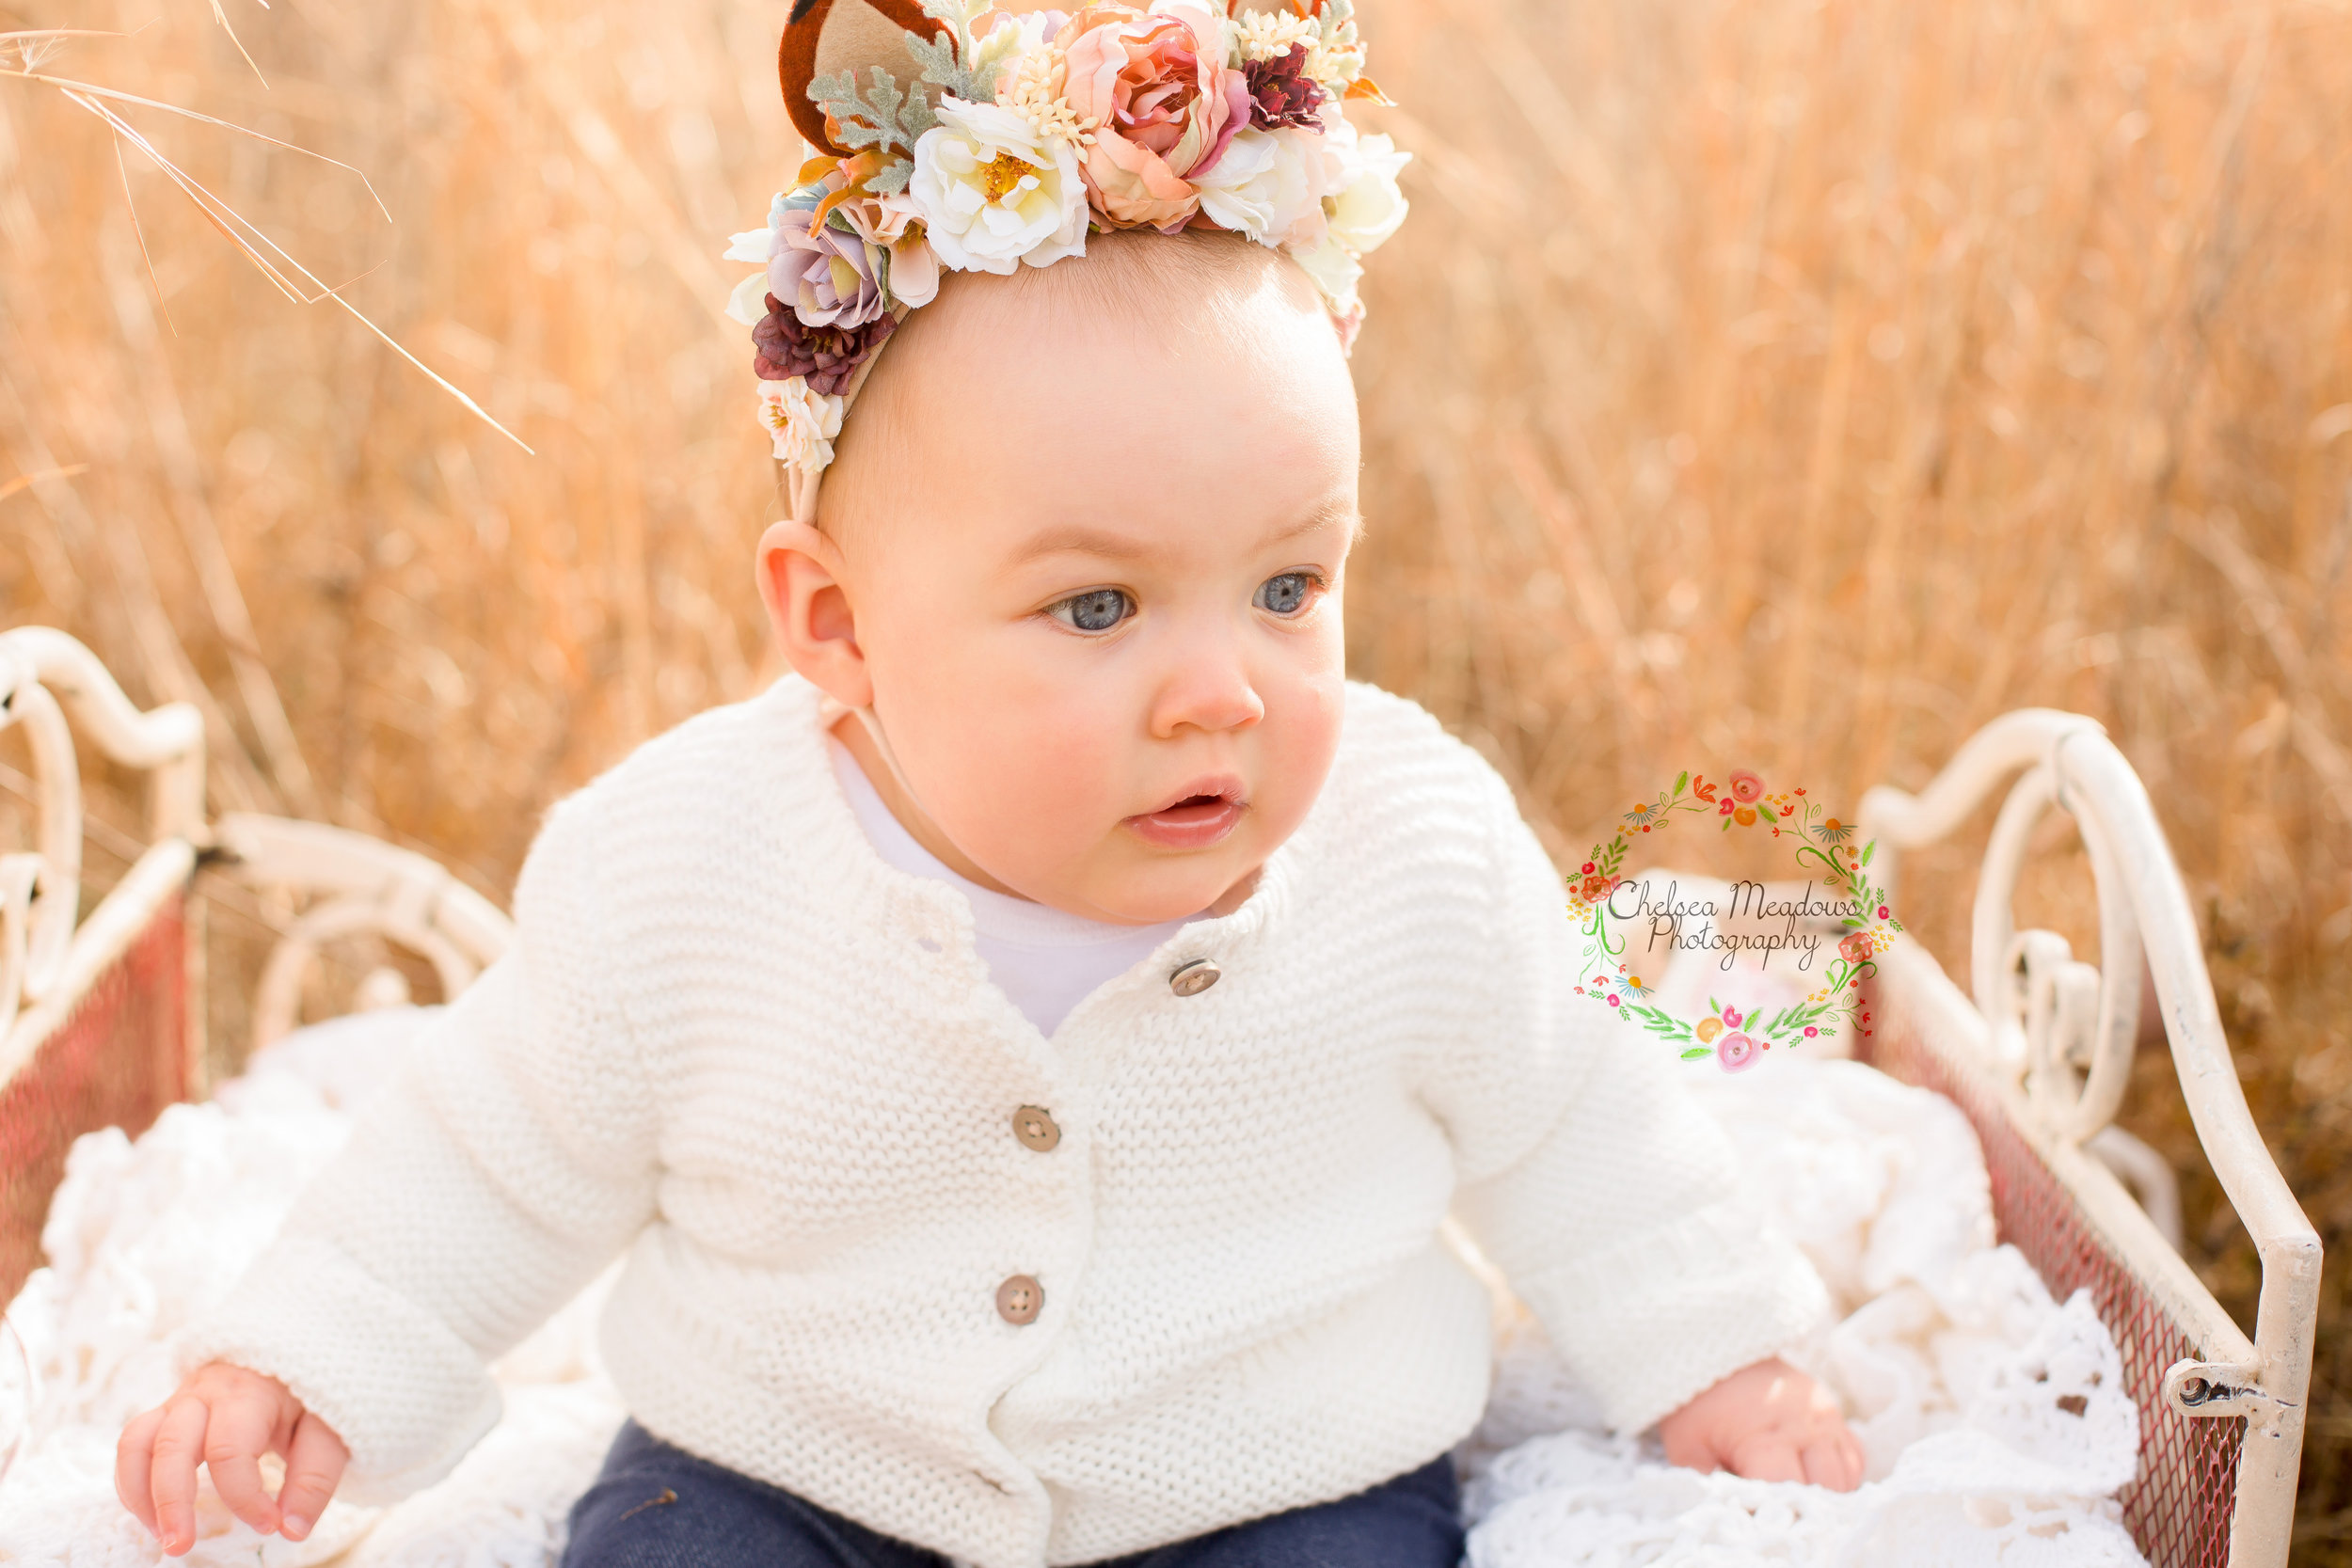 Phina 6 Month Session - Nashville Family Photographer - Chelsea Meadows Photography (26).jpg